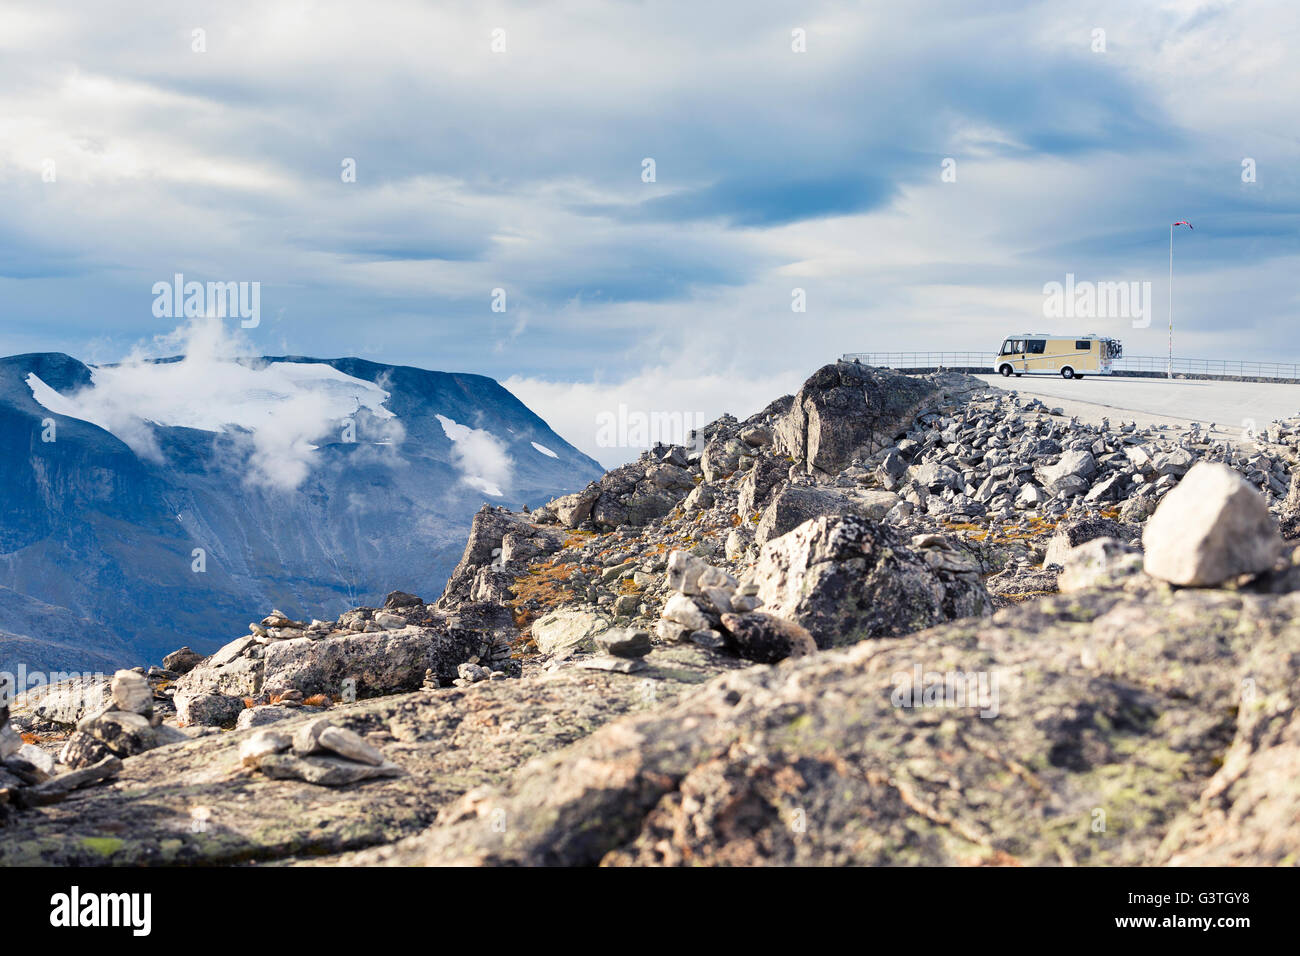 Norway, More og Romsdal, Sunnmore, Geirangerfjord, Observation point at edge of mountain valley with motor home - Stock Image